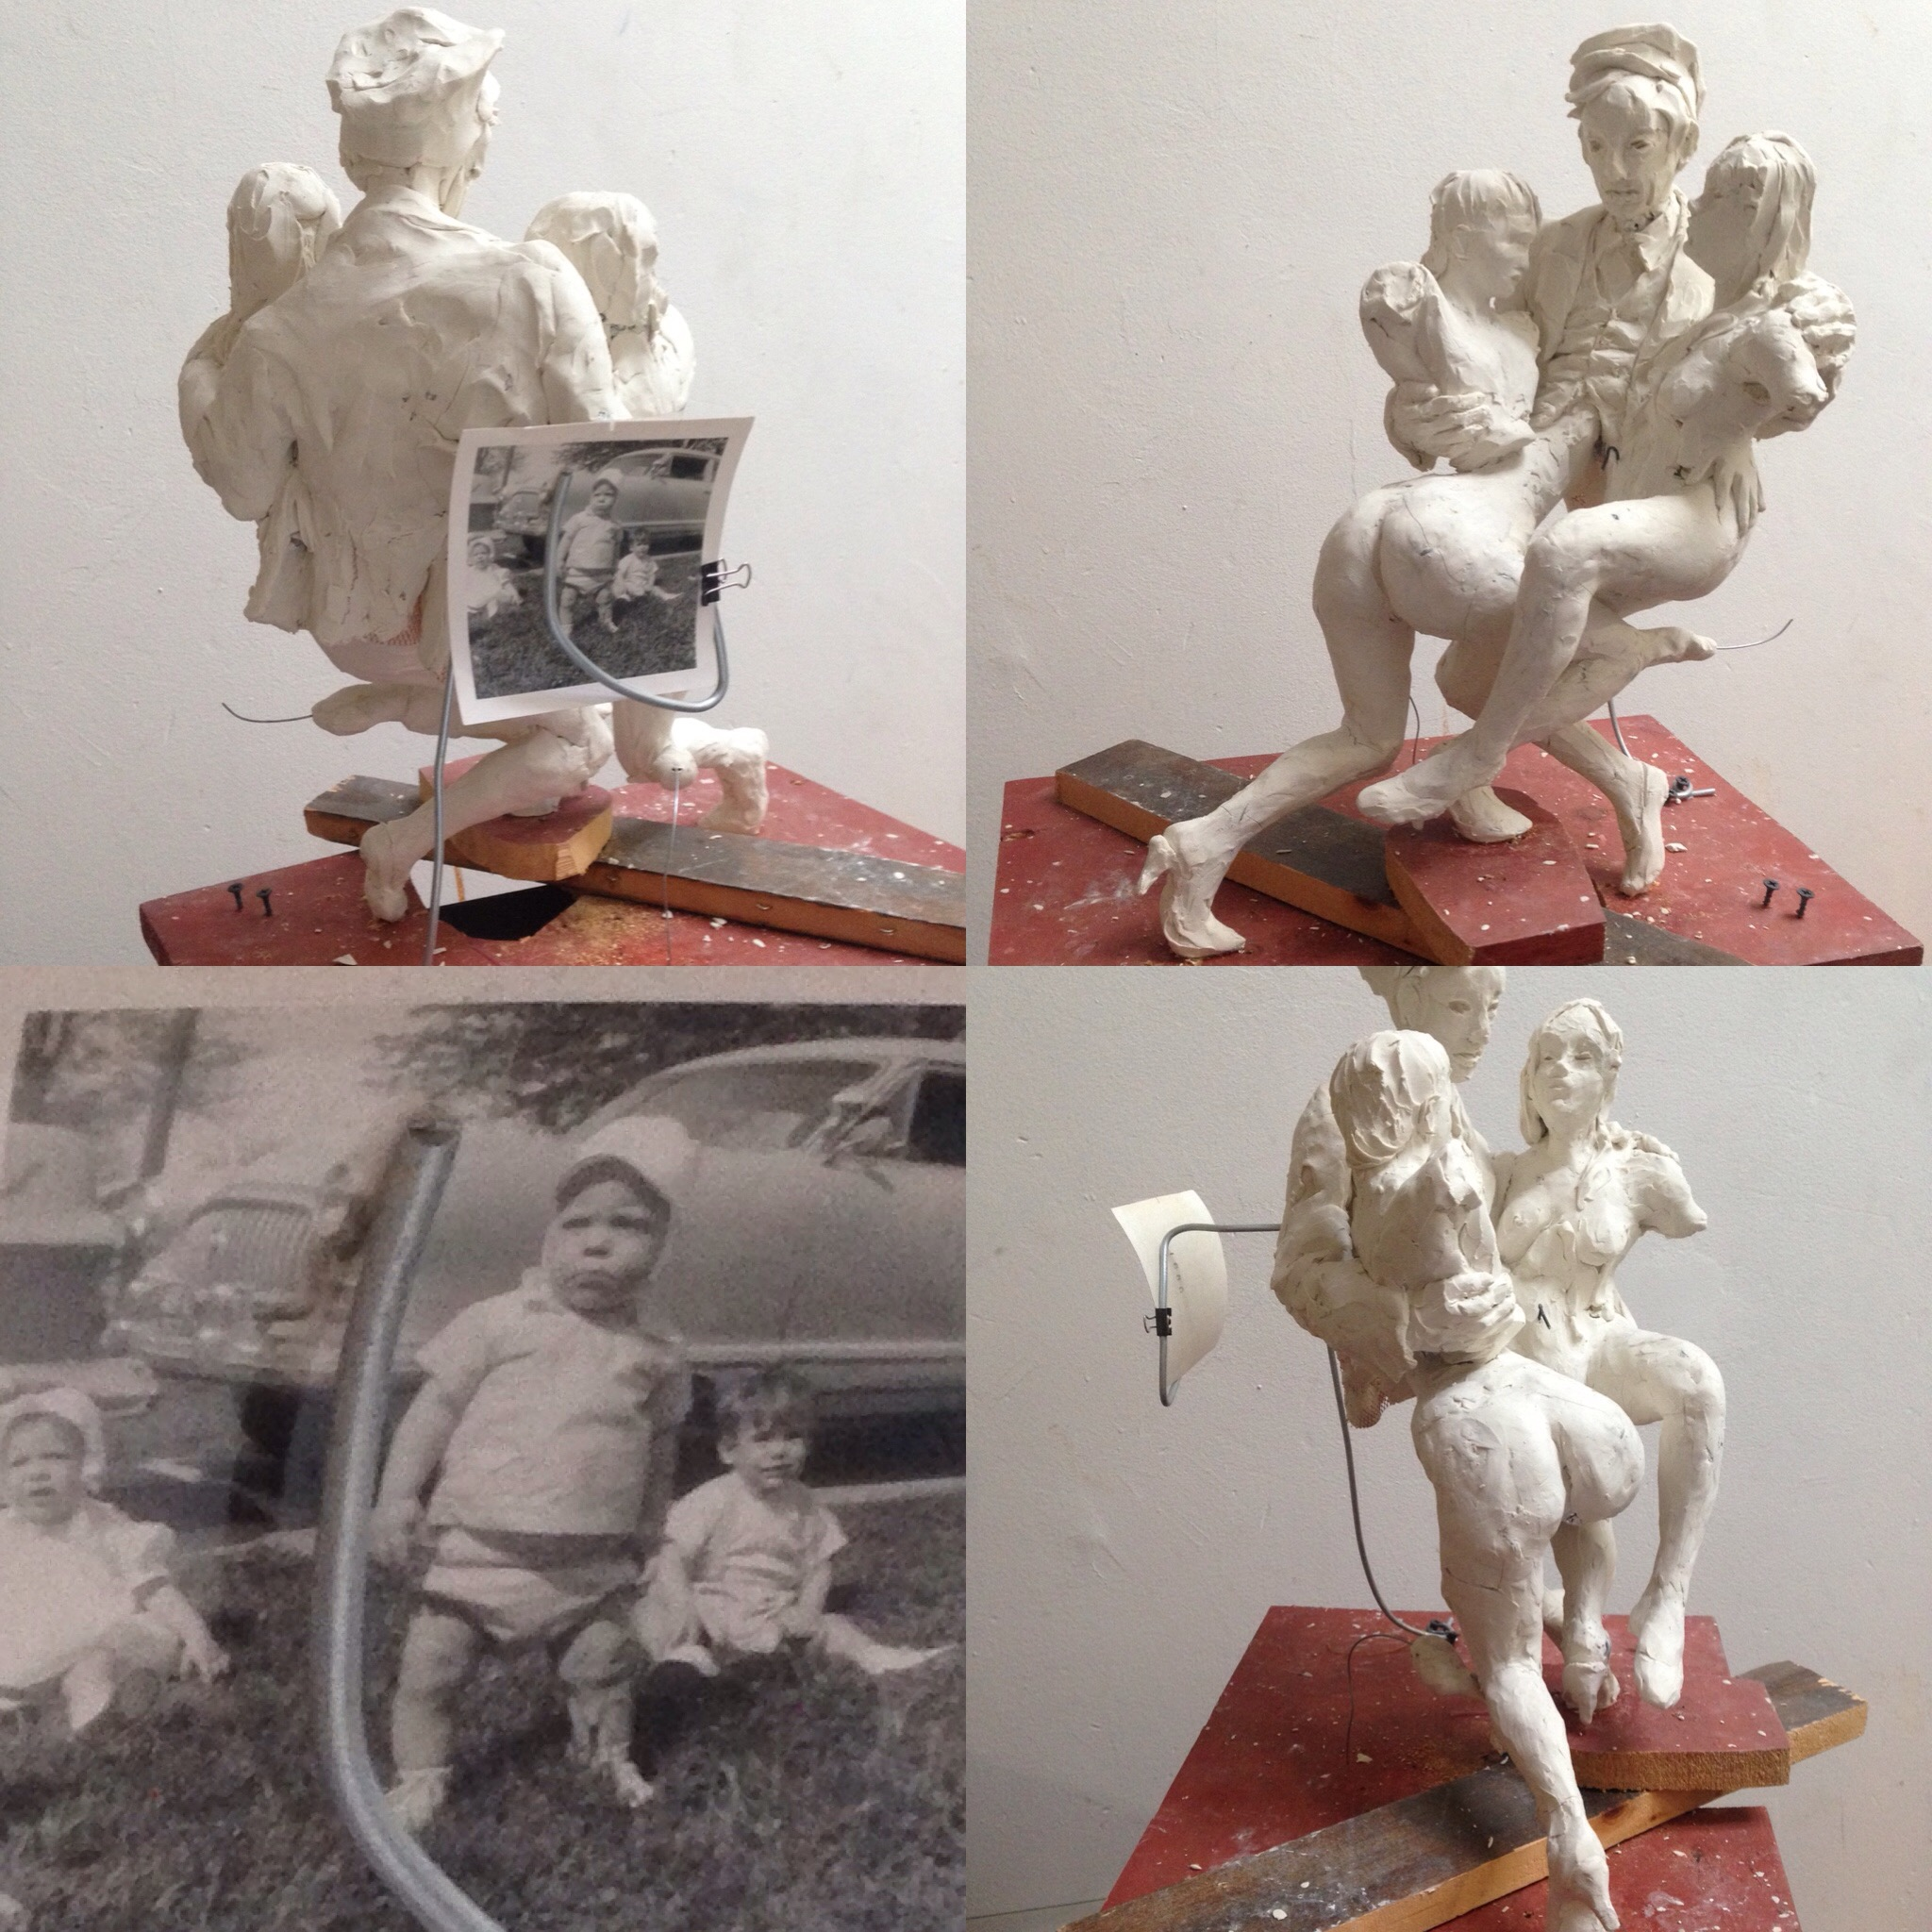 Dance as they were as they are, 2018, reinforced polymer clay with childhood photo